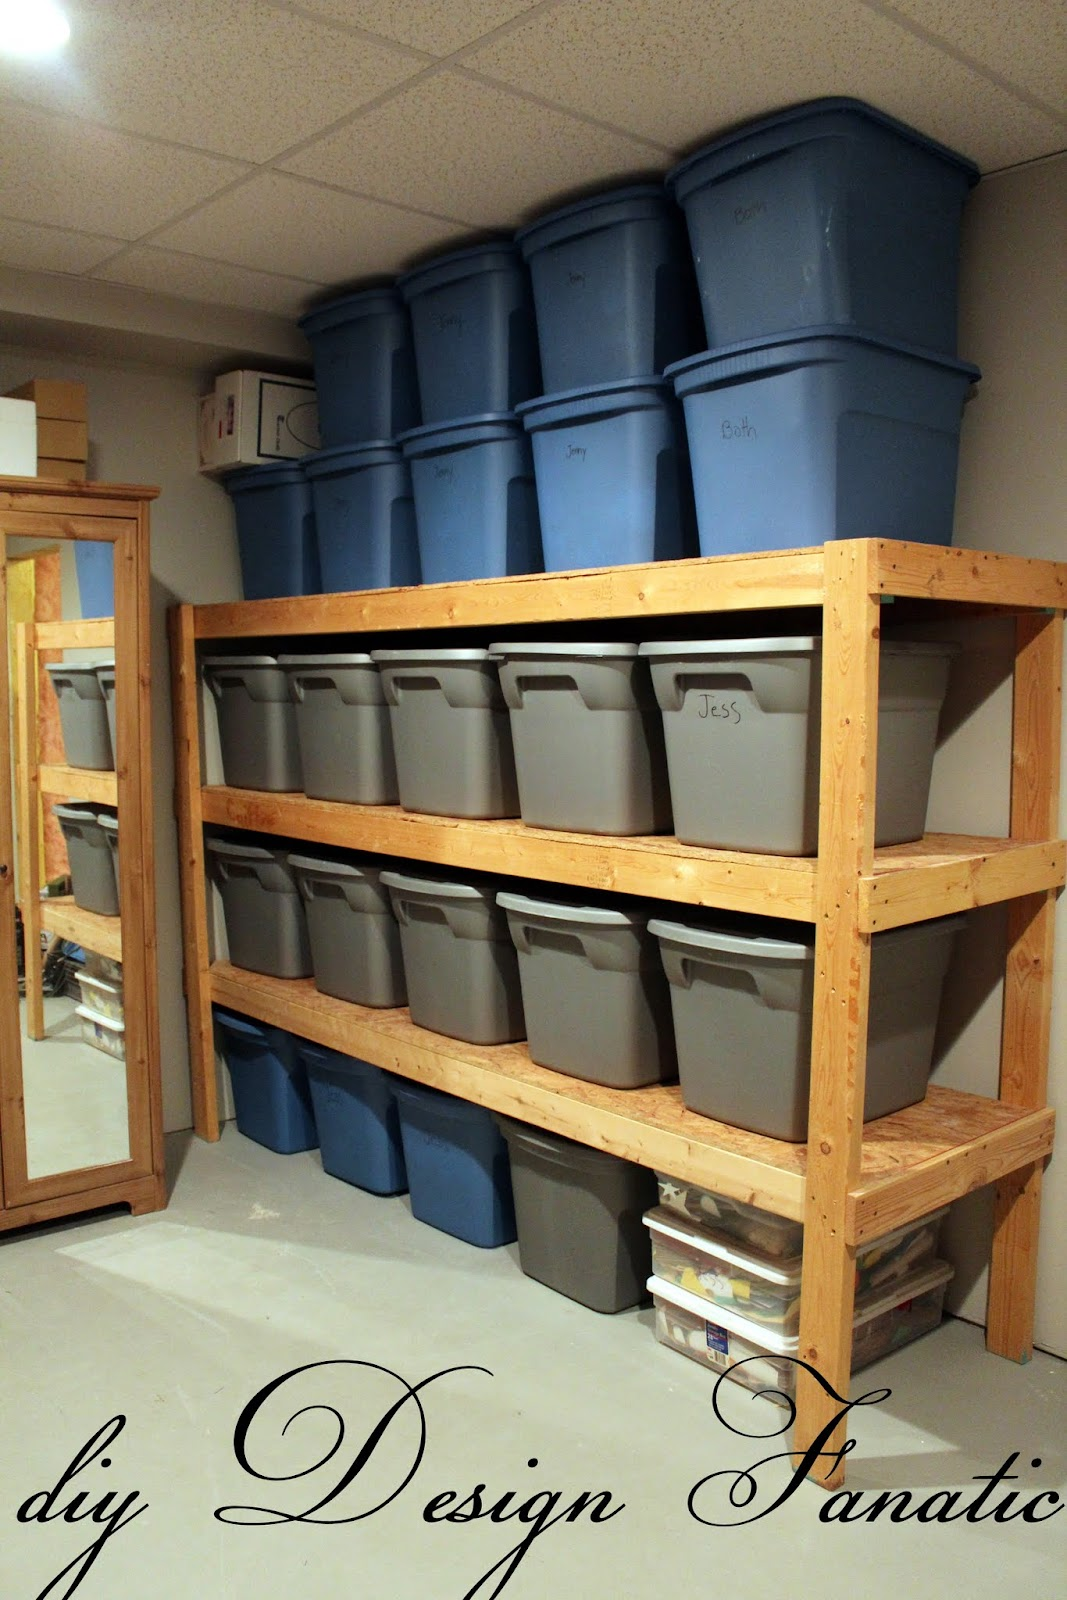 Here S What The Basement Storage Room Looks Like The Room